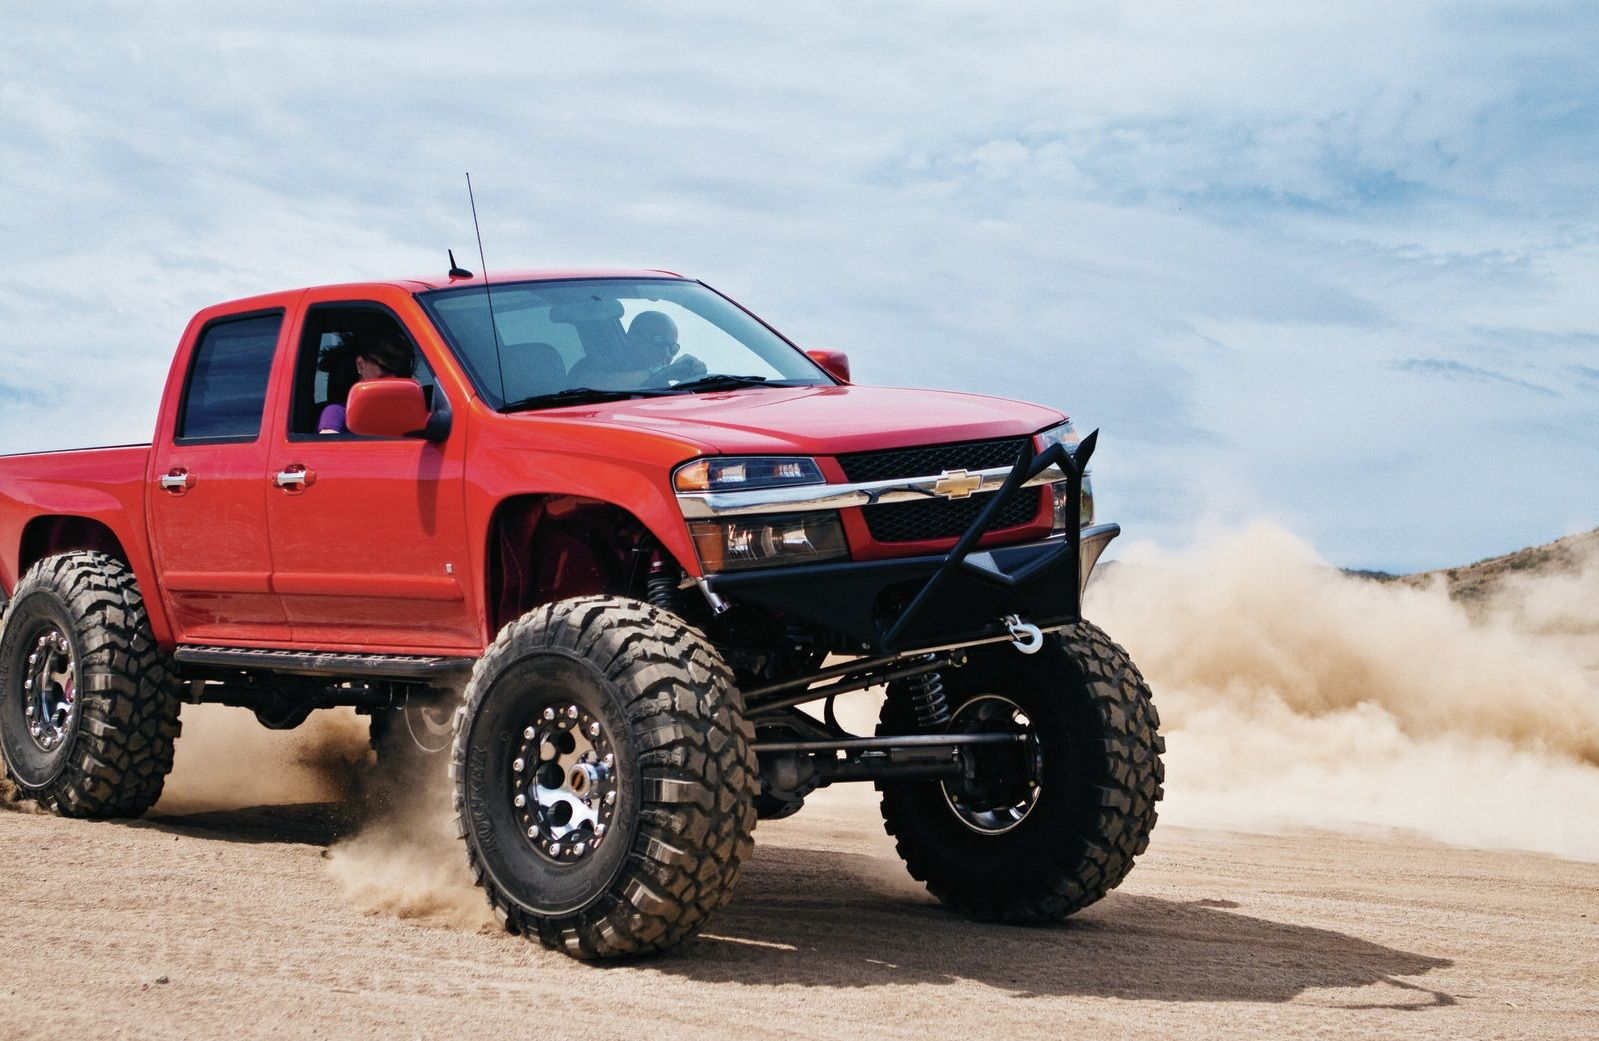 Gmc Canyon Lifted With Straight Axle Conversion Trucks Chevy Colorado Chevy